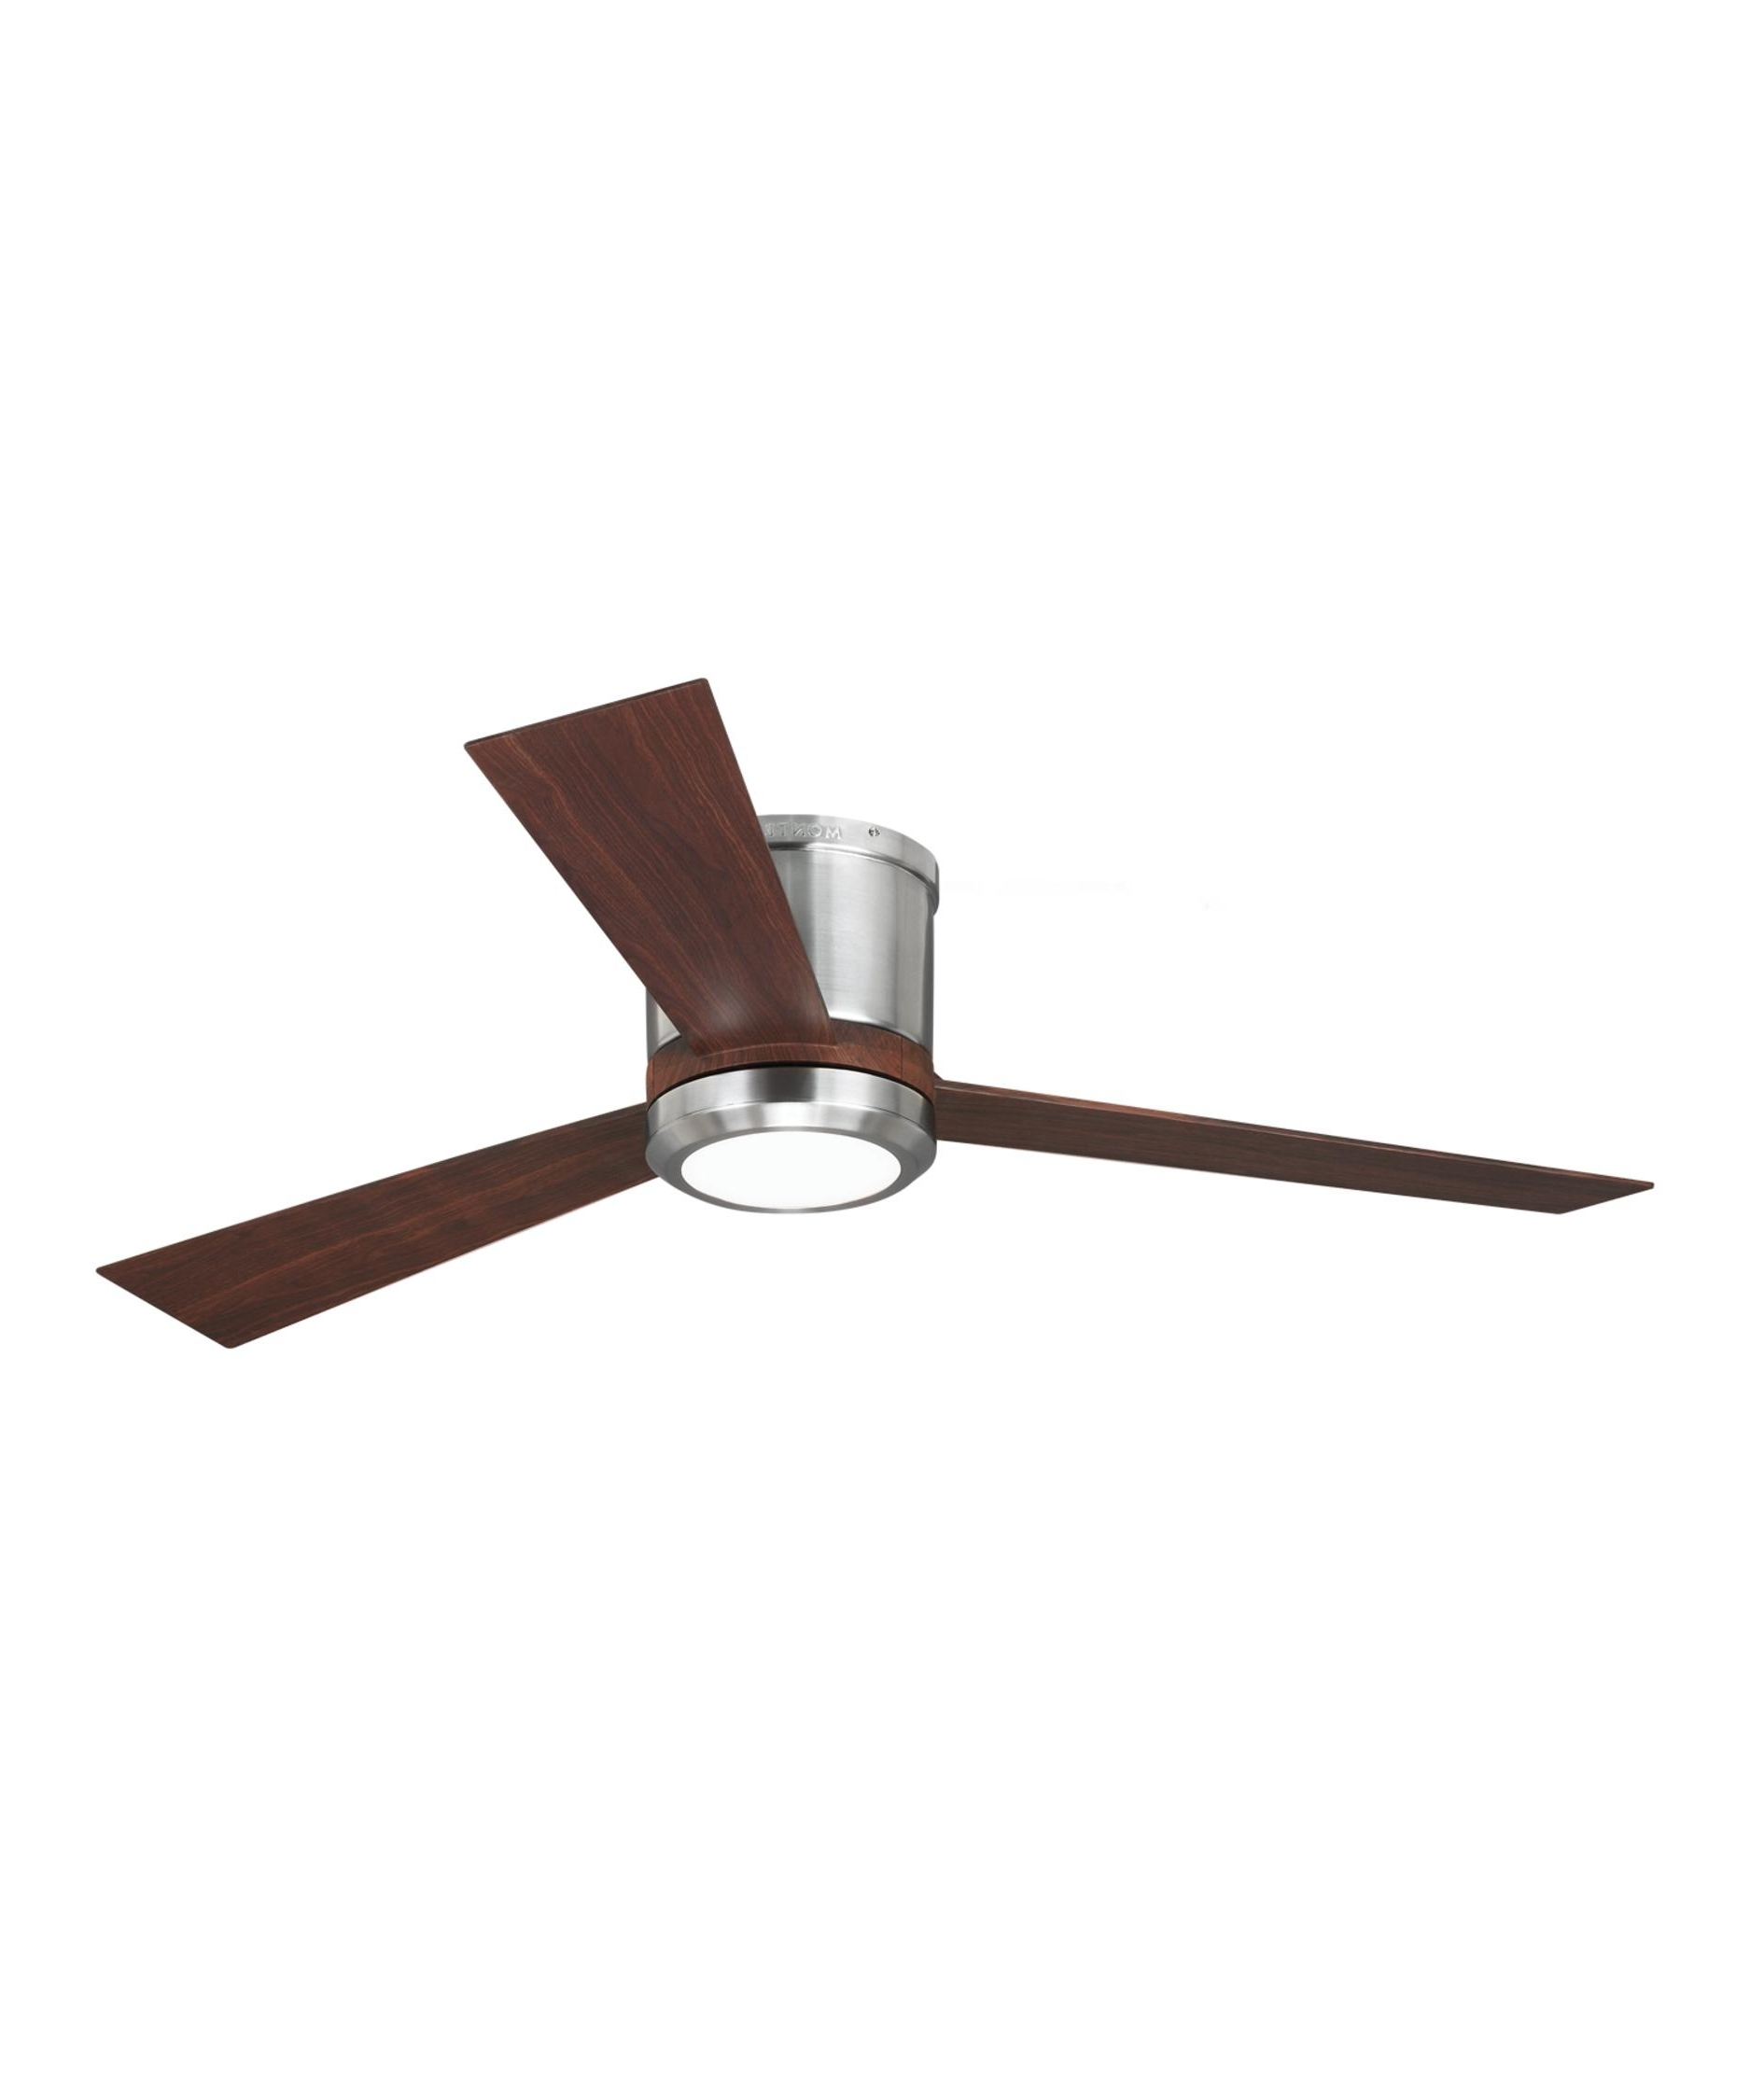 36 Inch Ceiling Fan With Light Flush Mount – Tariqalhanaee In 2019 36 Inch Outdoor Ceiling Fans With Light Flush Mount (Gallery 4 of 20)